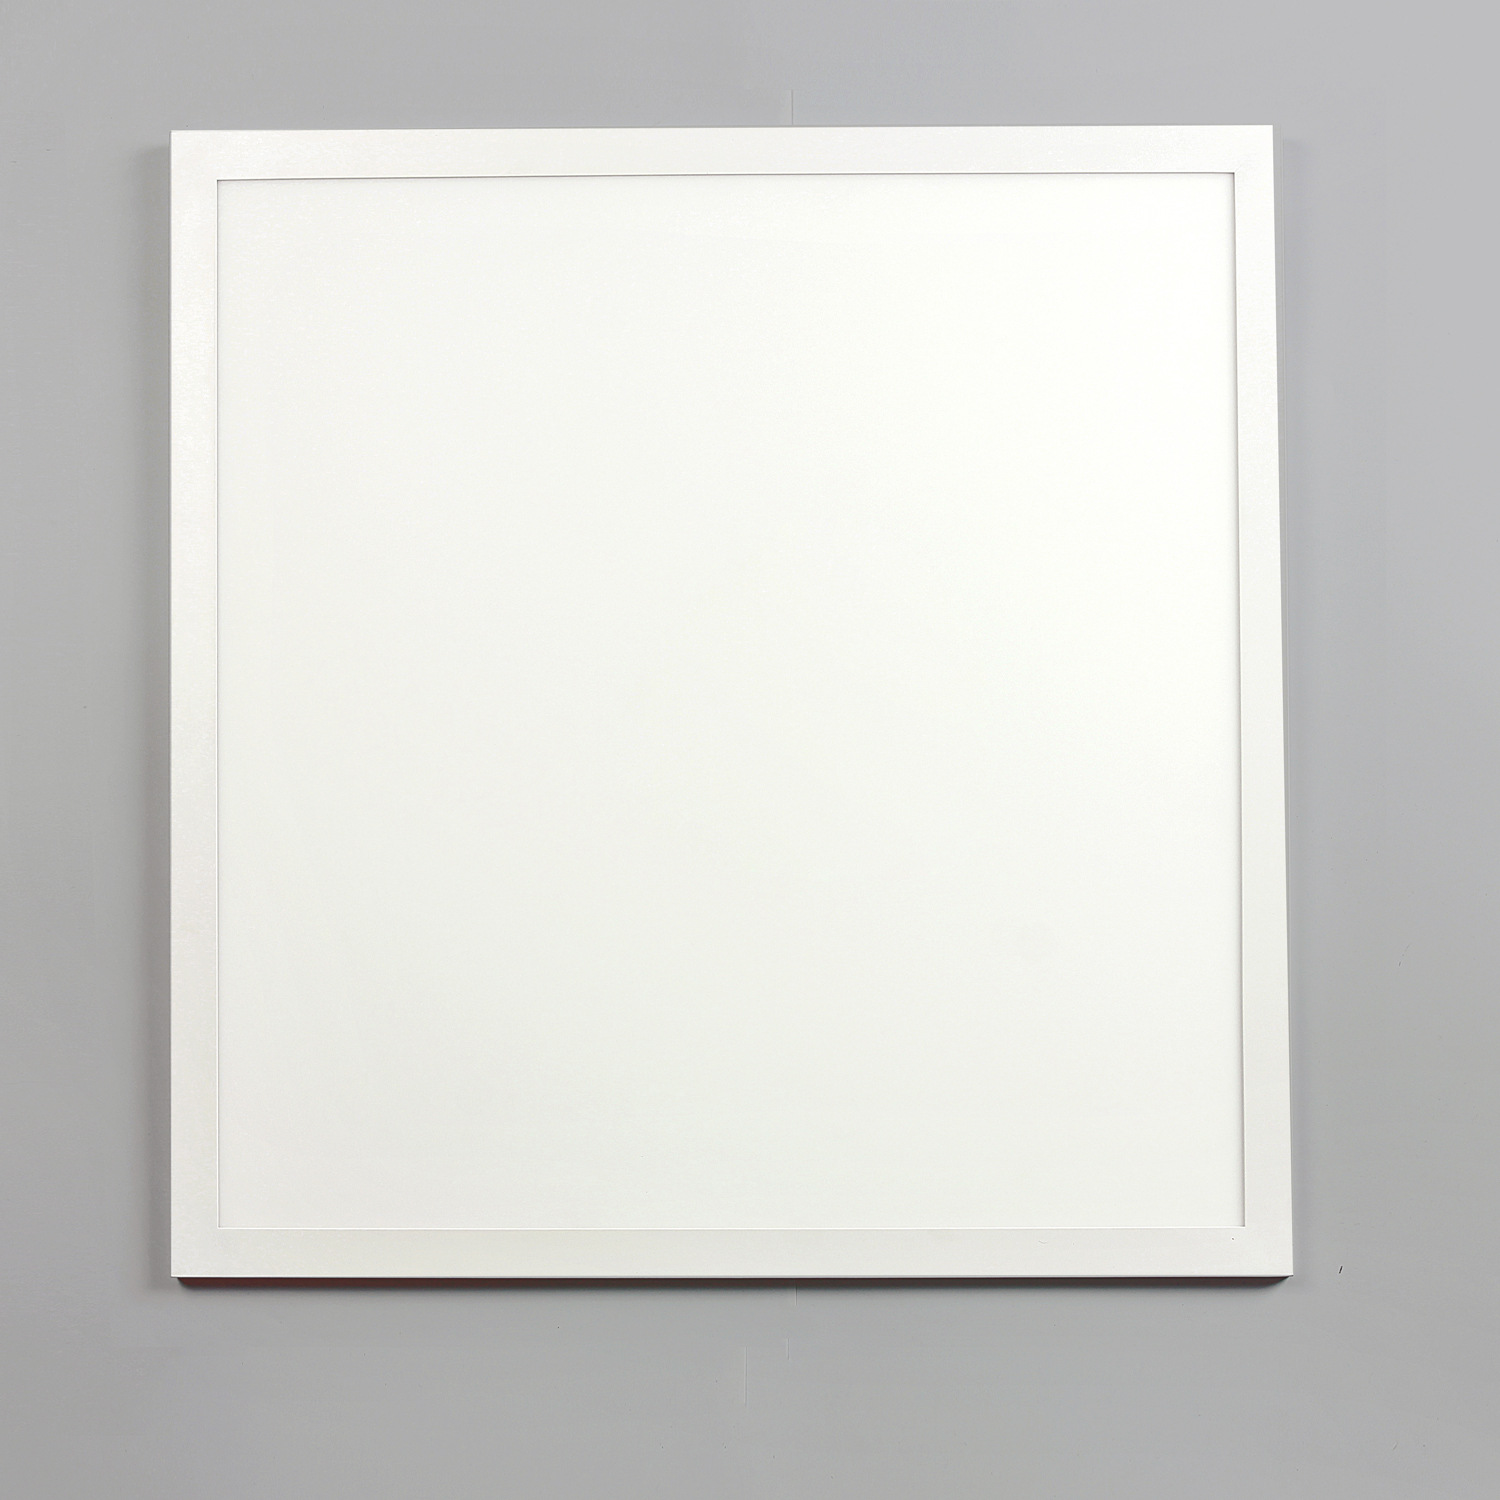 Aluminum Square 40W LED Panel Light